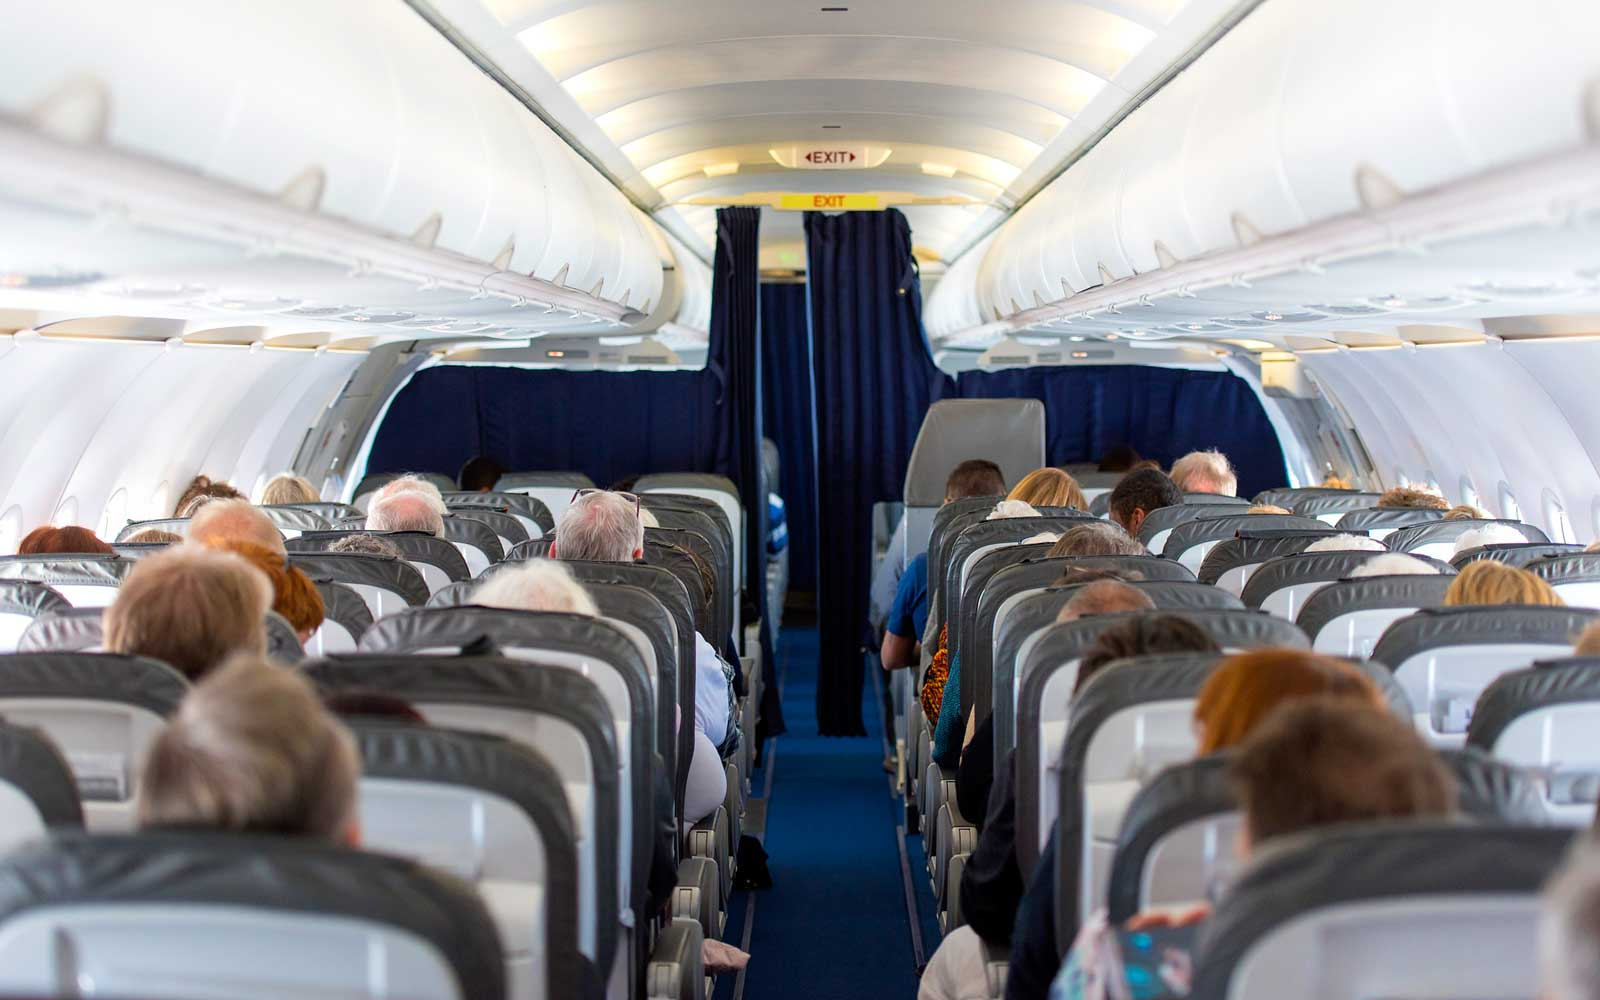 Book This Seat to Avoid Getting Sick on Your Next Flight